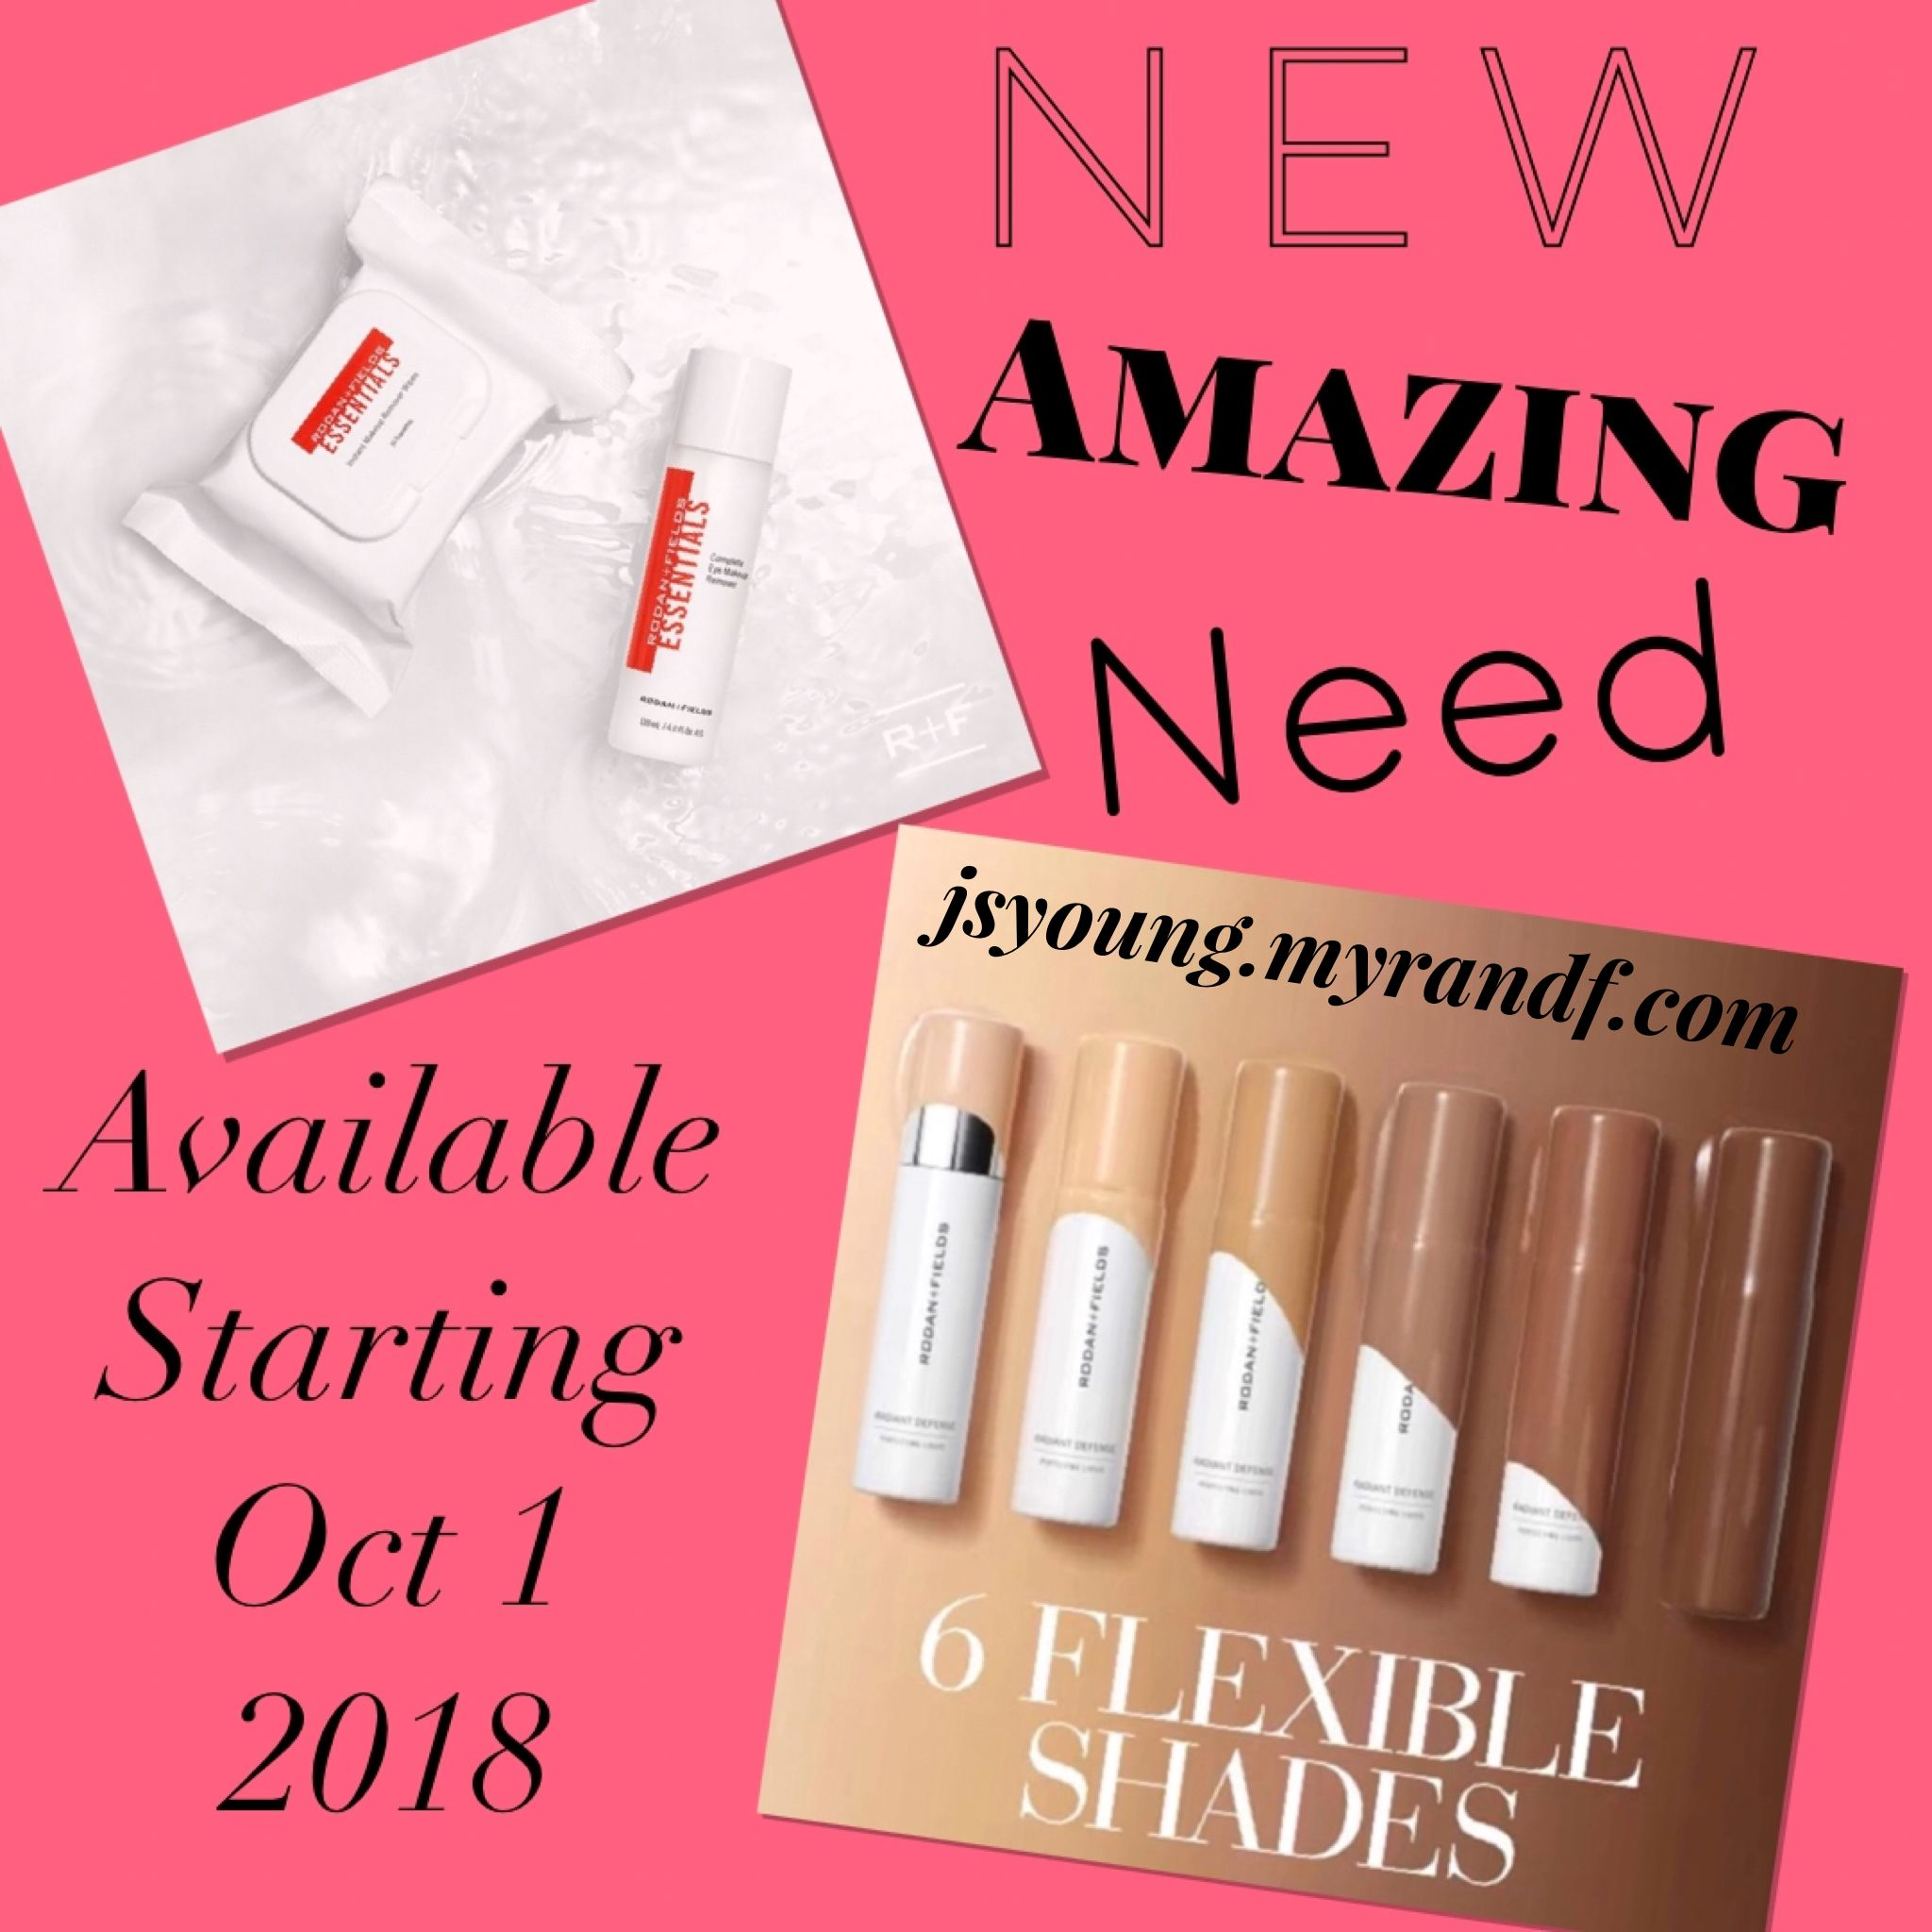 Rodan + Fields has done it again! 3 amazing new products